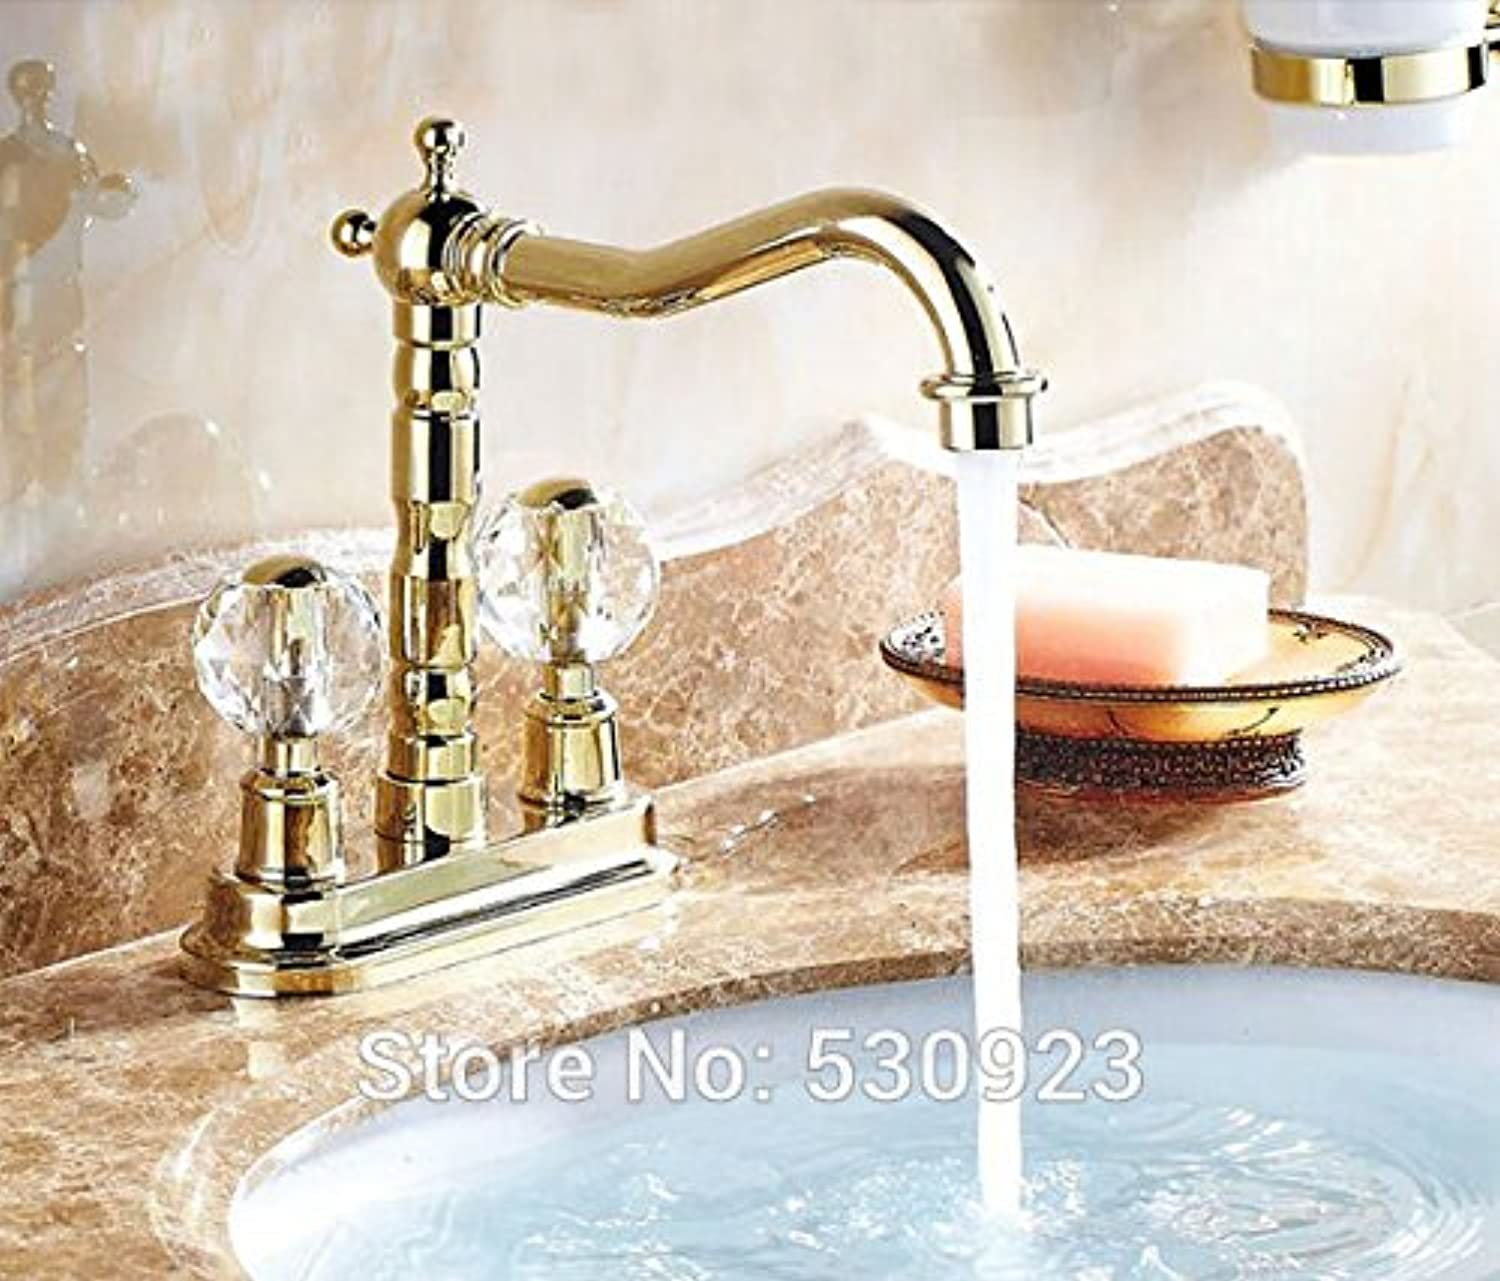 Maifeini Faucet, Faucet, Faucet, Wash Your Face, Wash Your Hands, The New Euro Style Of Luxury Bathroom Basin Series Mixer Click gold Finished Heat Sink Faucet Dual Crystal Handle Deck Mounted